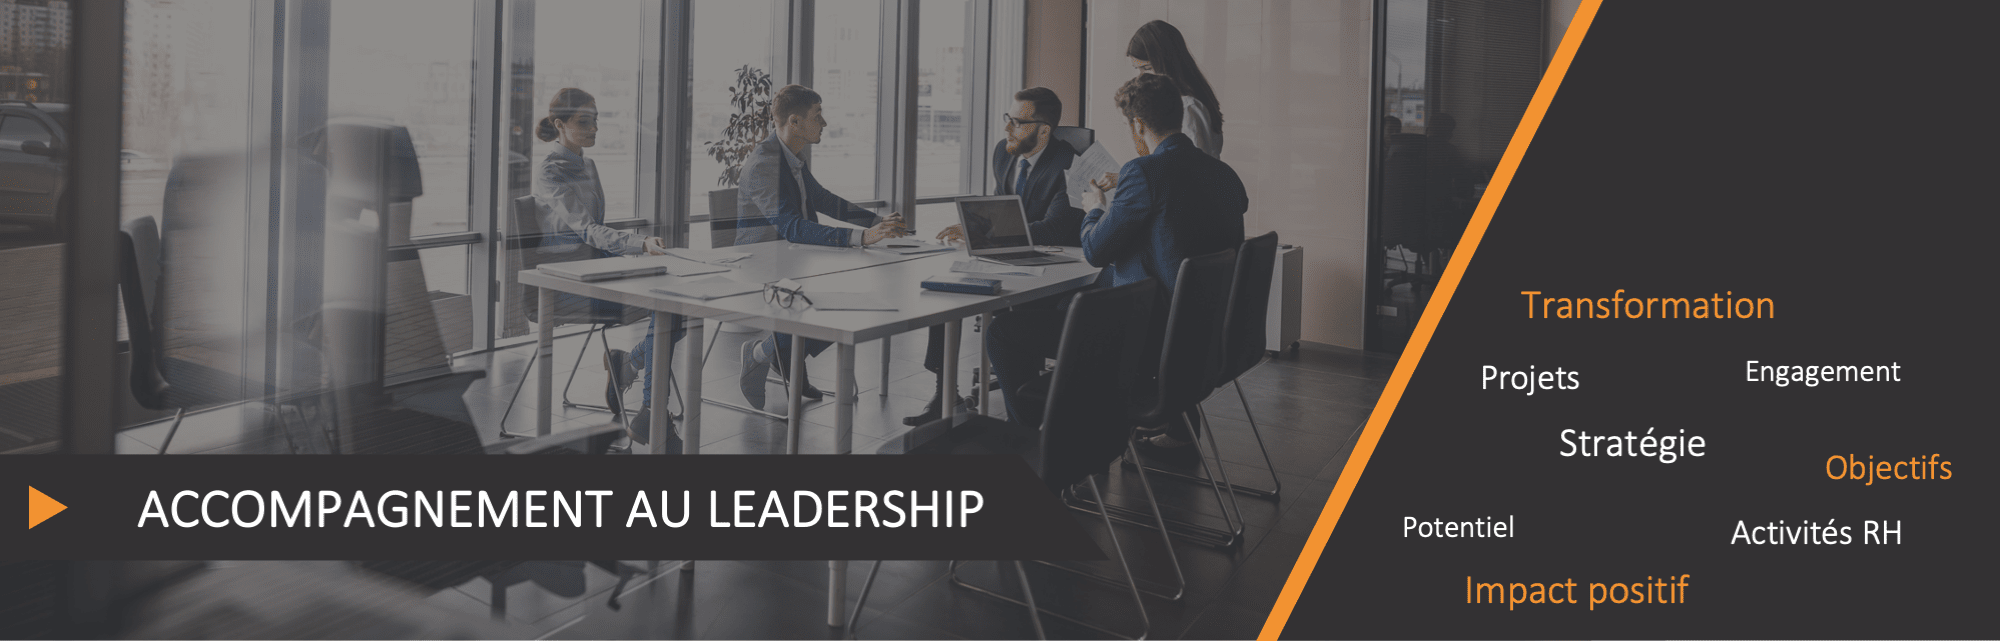 Groupe équipe accompagnement table leadership